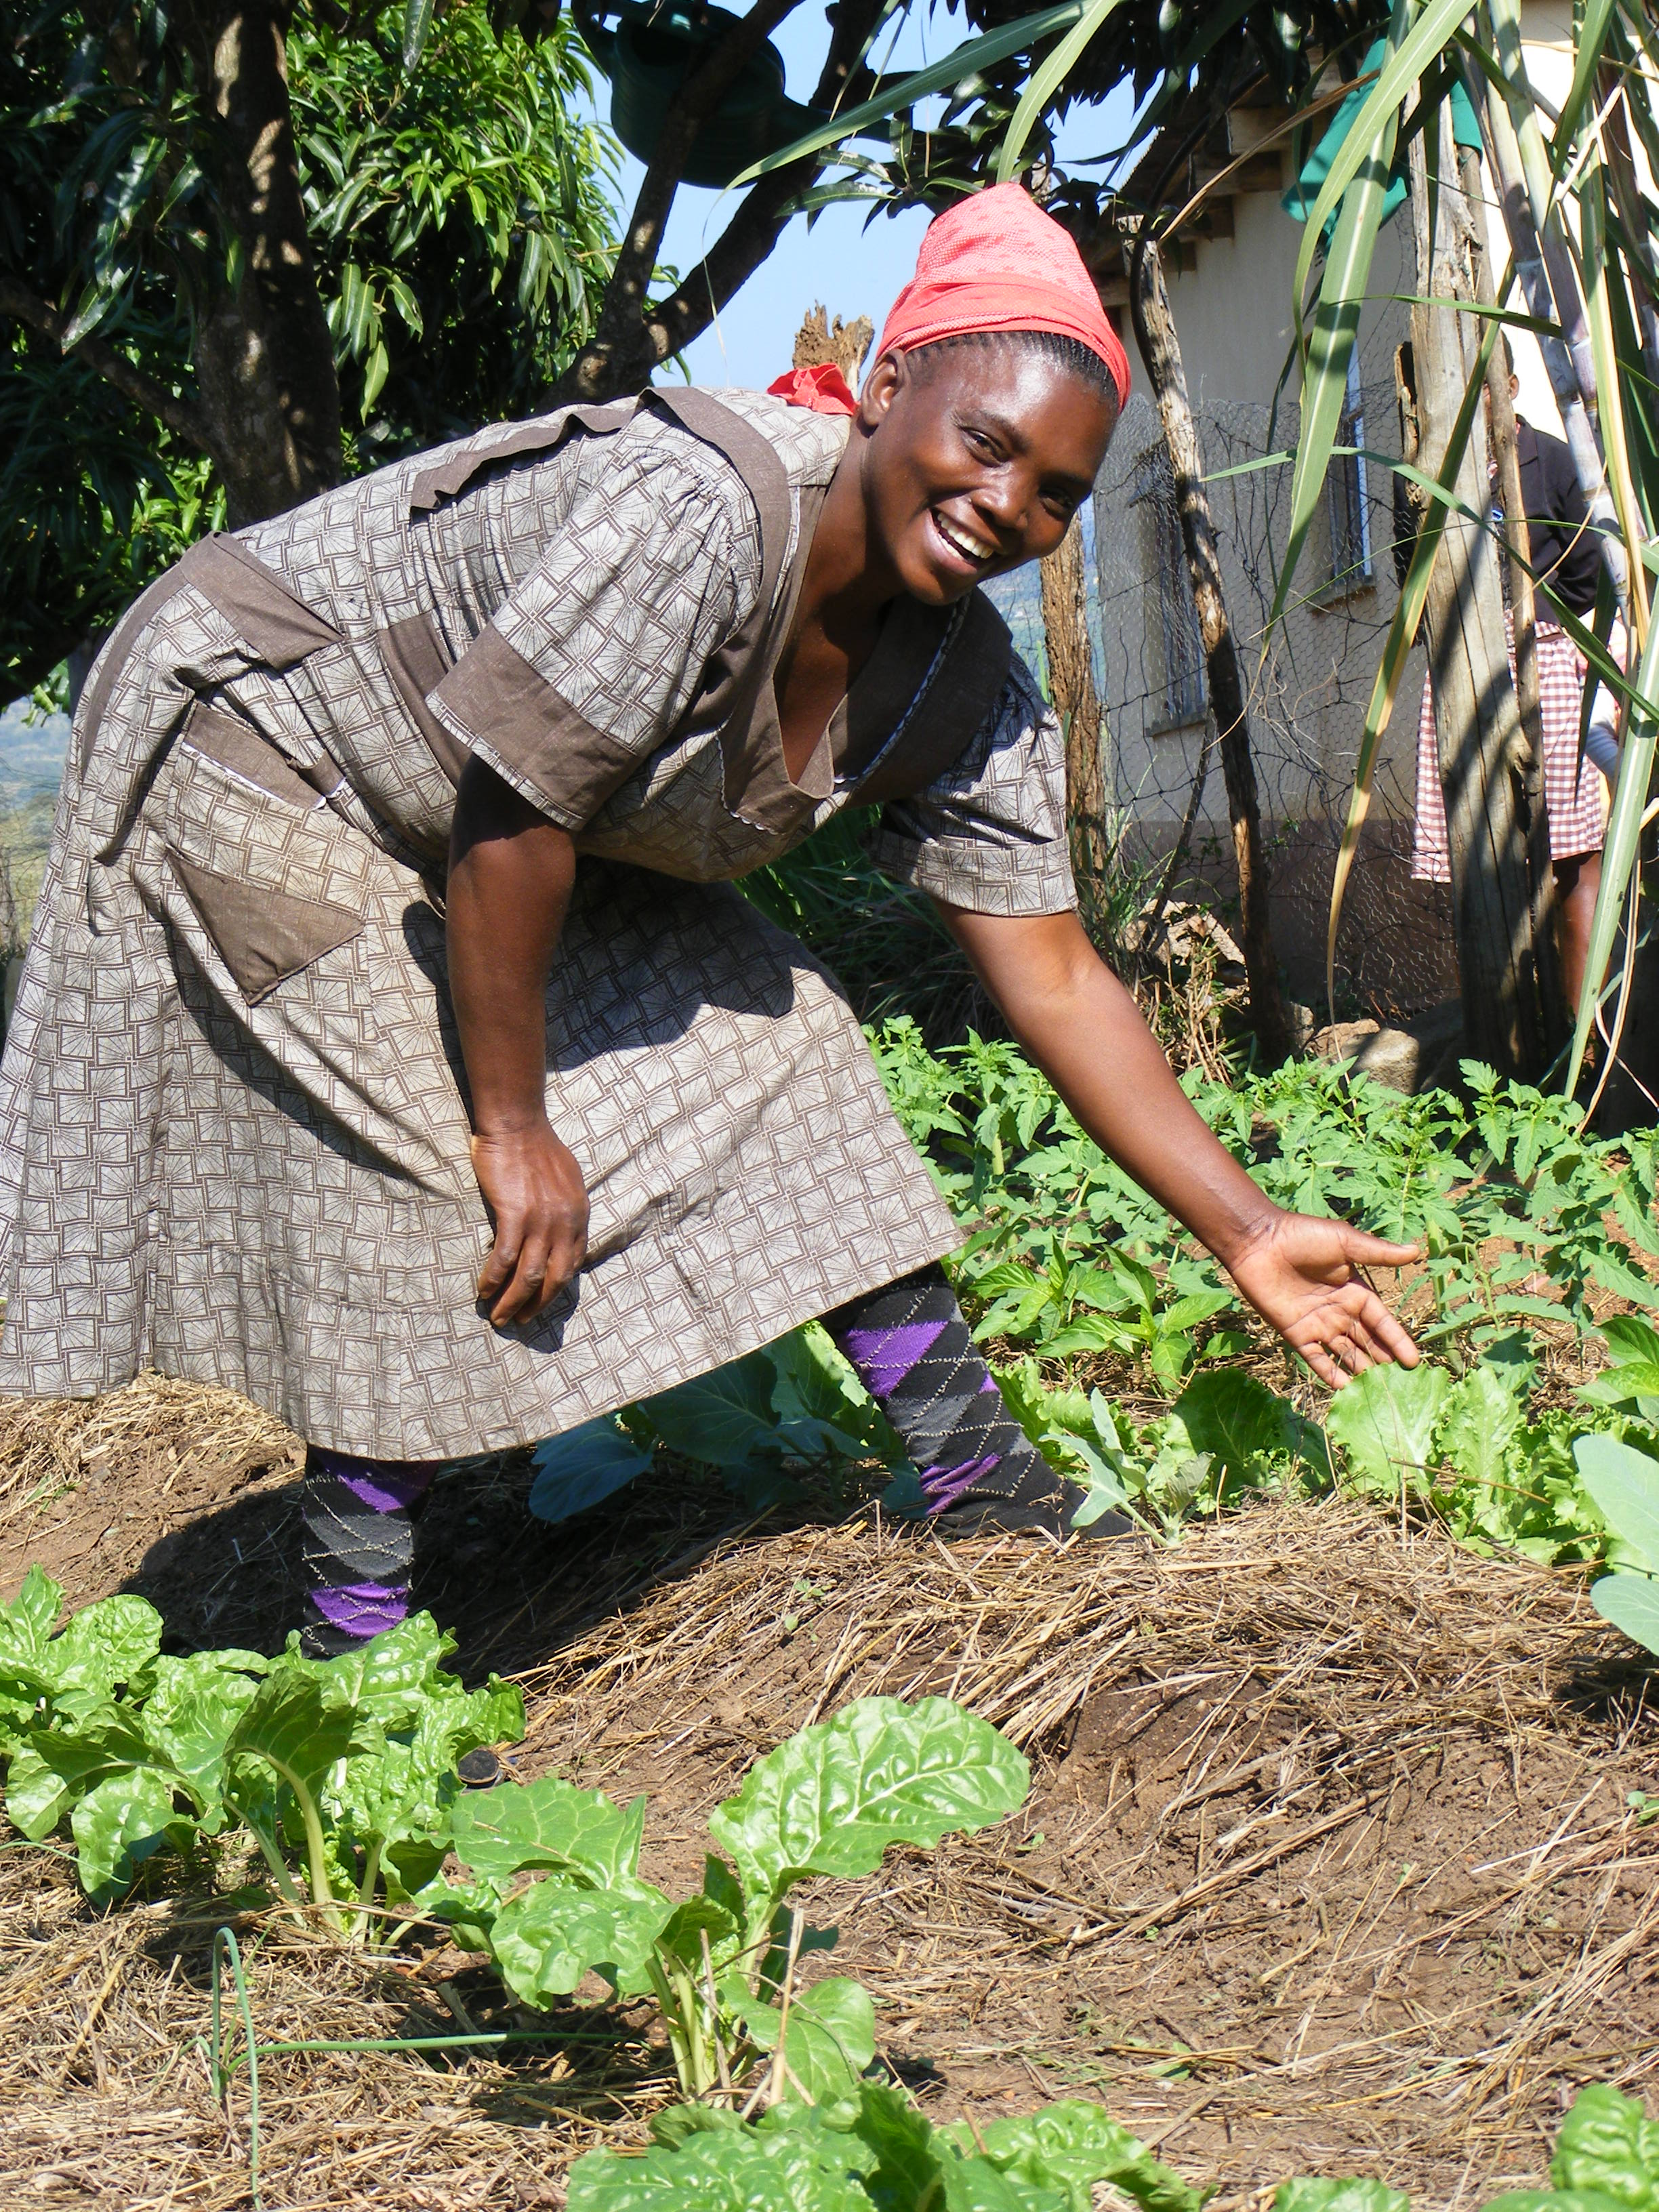 Futhi Fakhudzi:    I used to spend 250 Lilangeni (about £18) a month on groceries. Now I grow peppers, cabbage, tomatoes, leak, chard, spinach, beet, lettuce carrots and mango. With more money saved, and an income from my garden, my 3 older children can attend school. I am teaching my neighbours, and my sister next door, who now has a plot of her own. We are growing together.